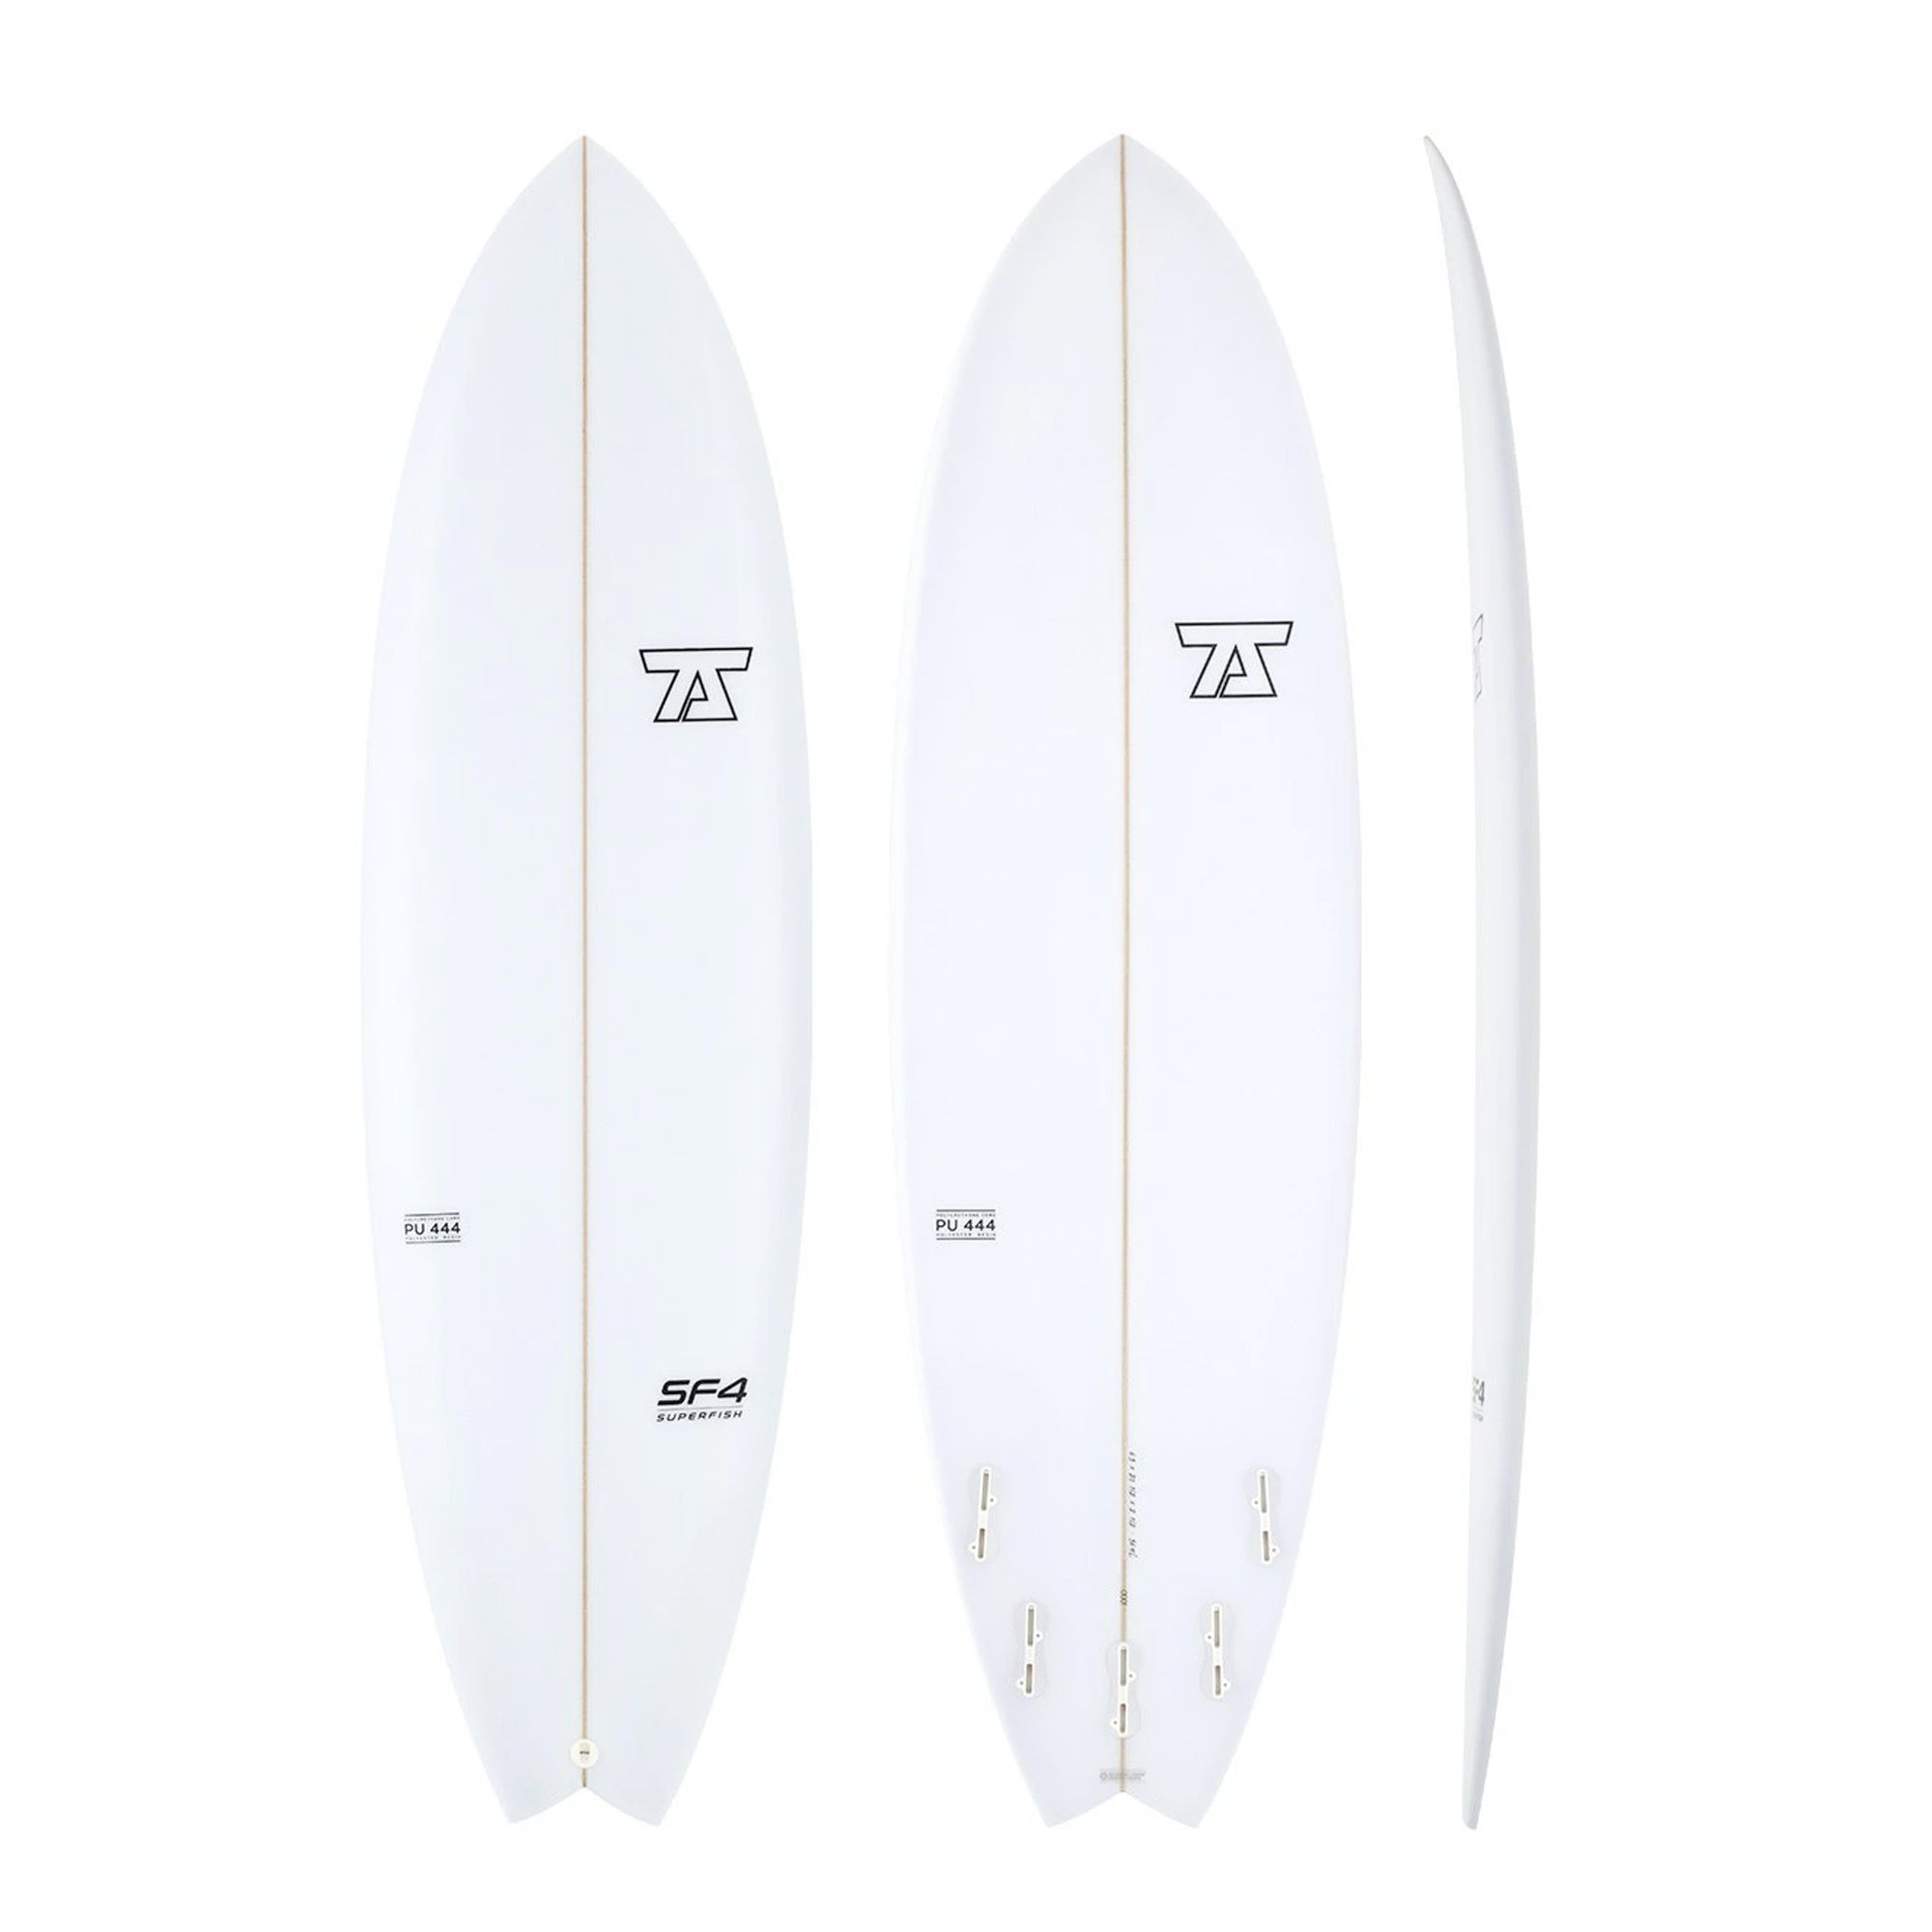 7S SuperFish 4 Surfboard - PU